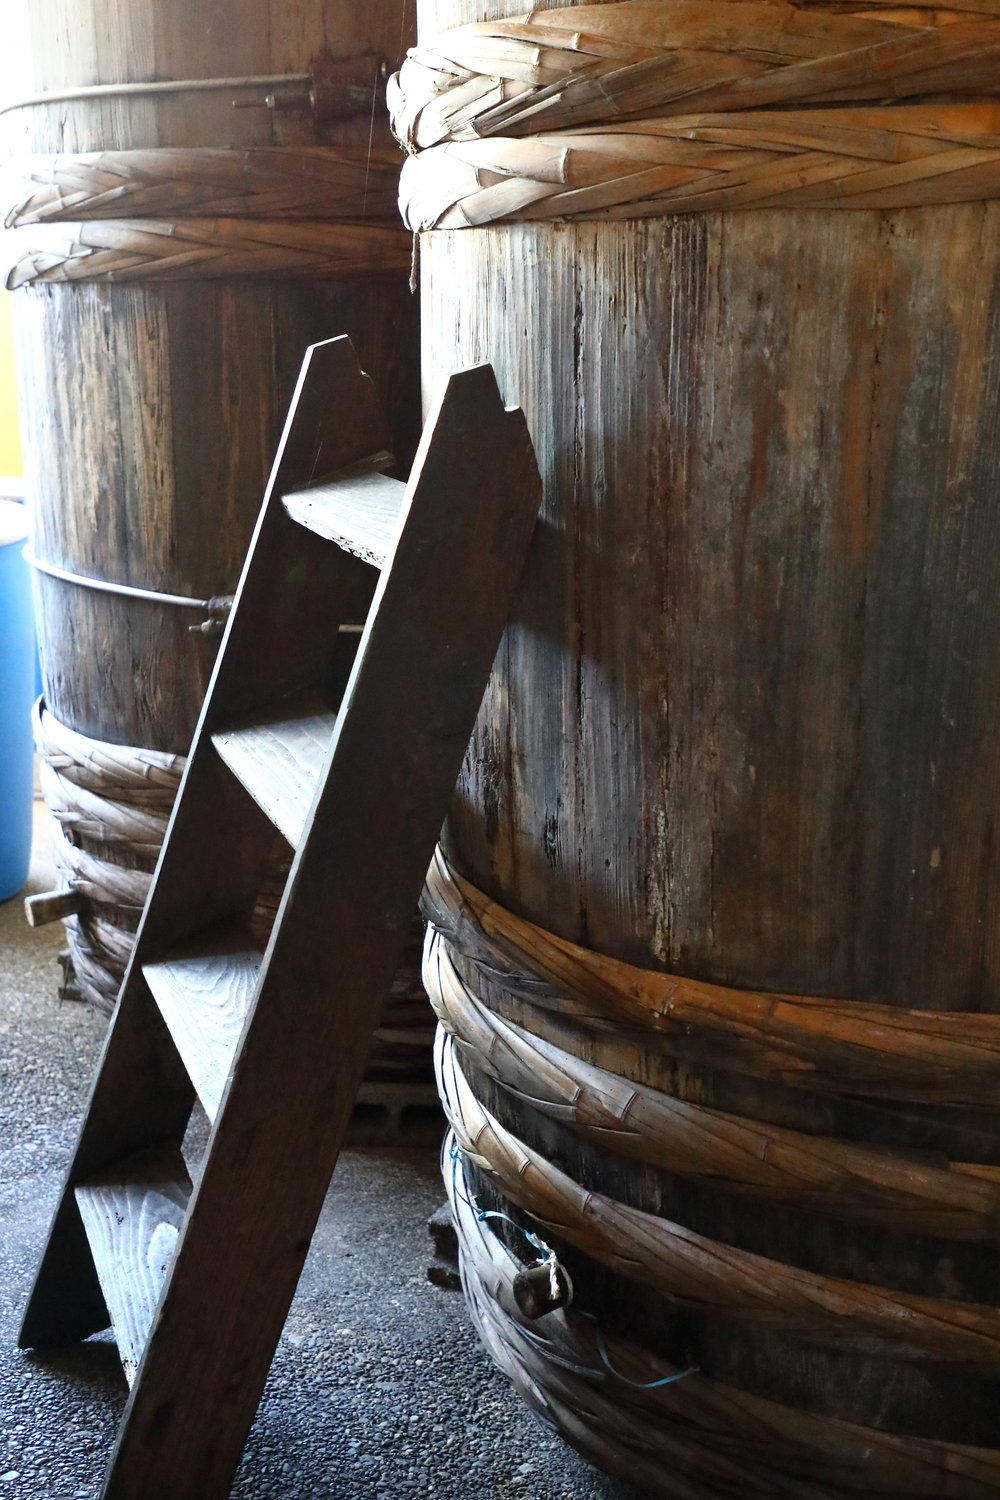 The deep, rich-tasing  Okedoko no Chikara   so-su  that comes from the bottom of the large  kioke  wooden fermentation barrels is a foundation sauce one can use to create your own delicious sauces.